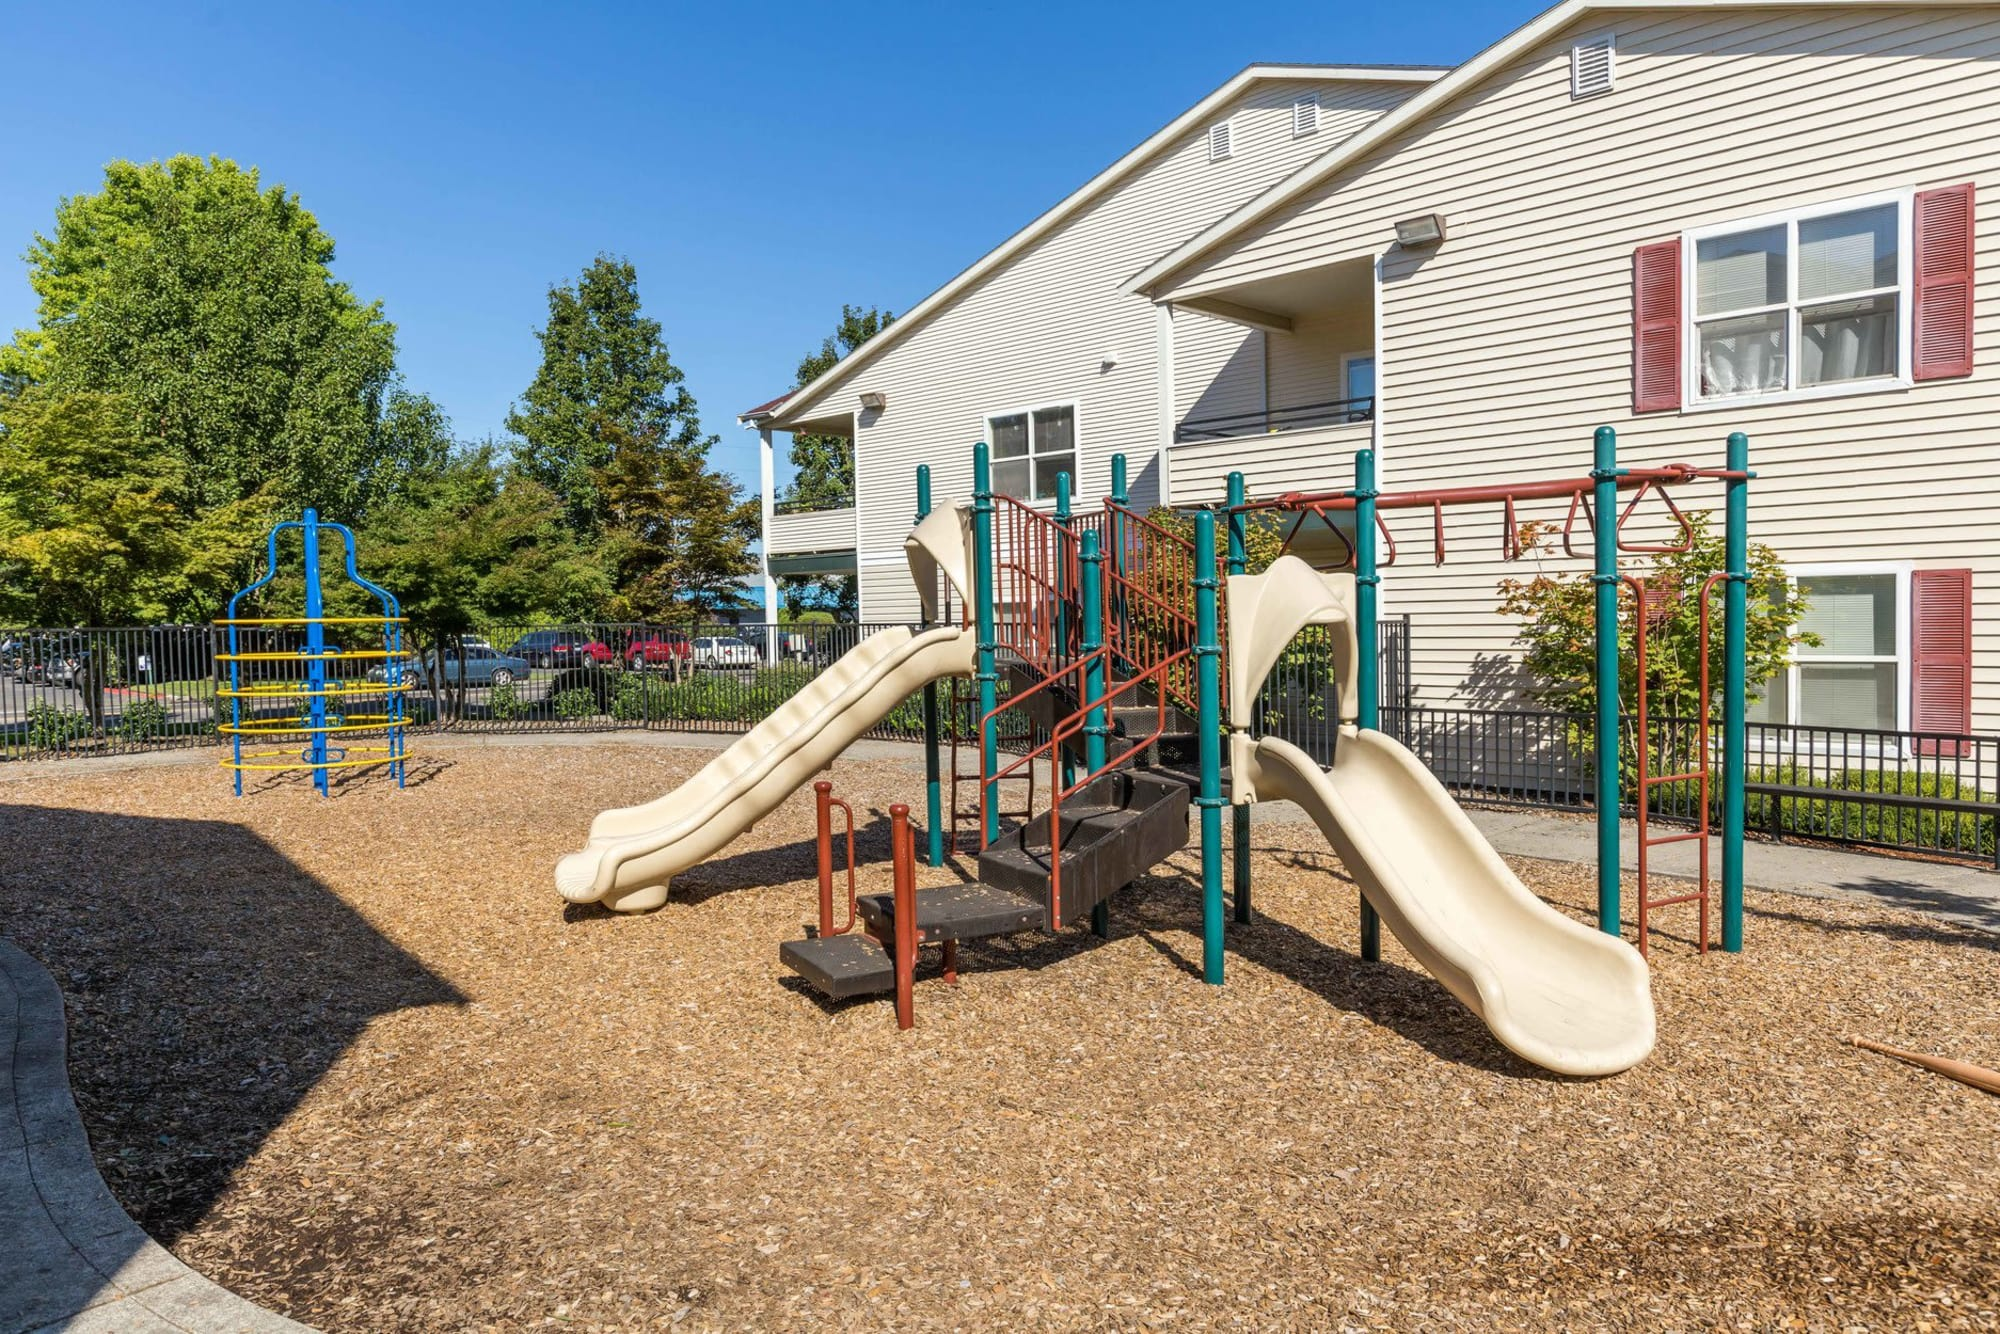 Playground at The Landings at Morrison Apartments in Gresham, Oregon